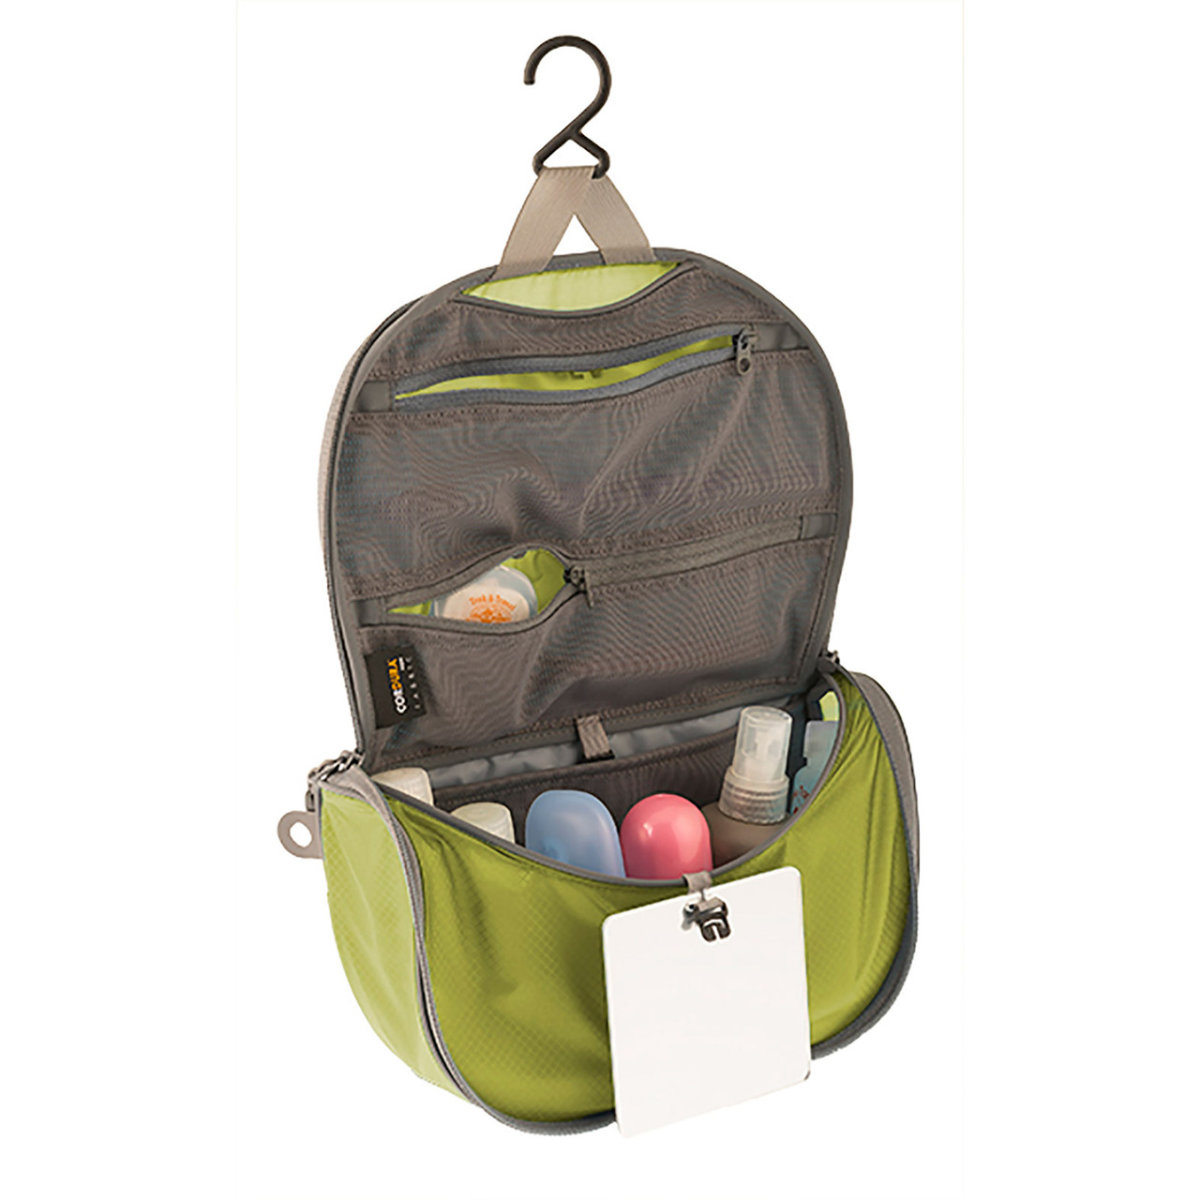 Косметичка Sea to Summit TL Hanging Toiletry Bag Lime/Grey, S STS ATLHTBSLI